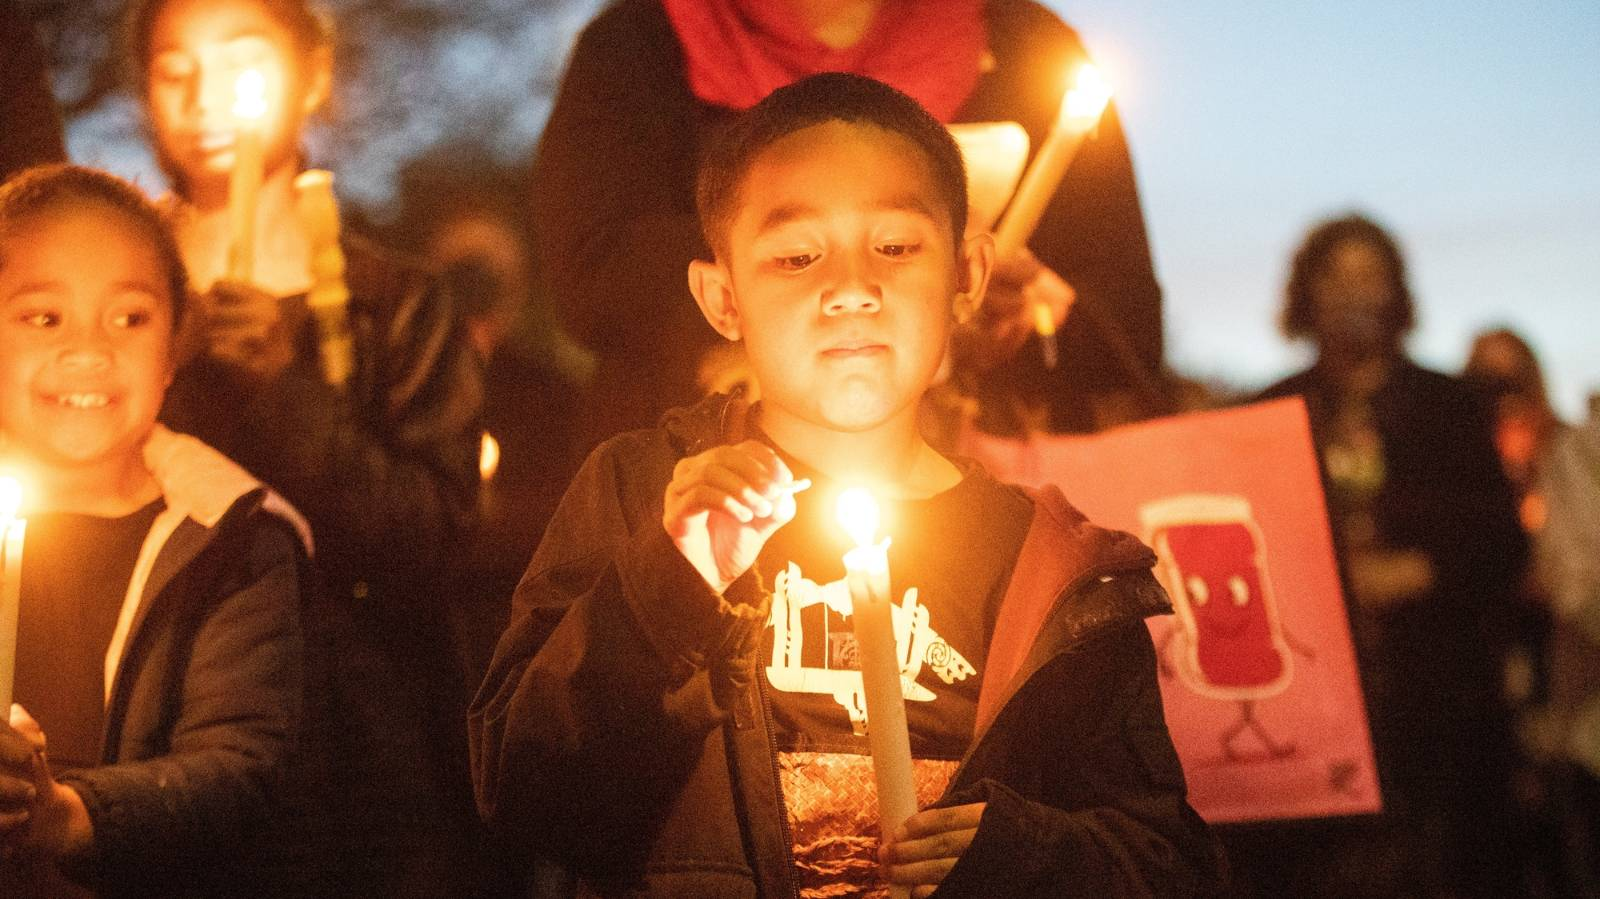 In pictures: Timaru vigil for three girls